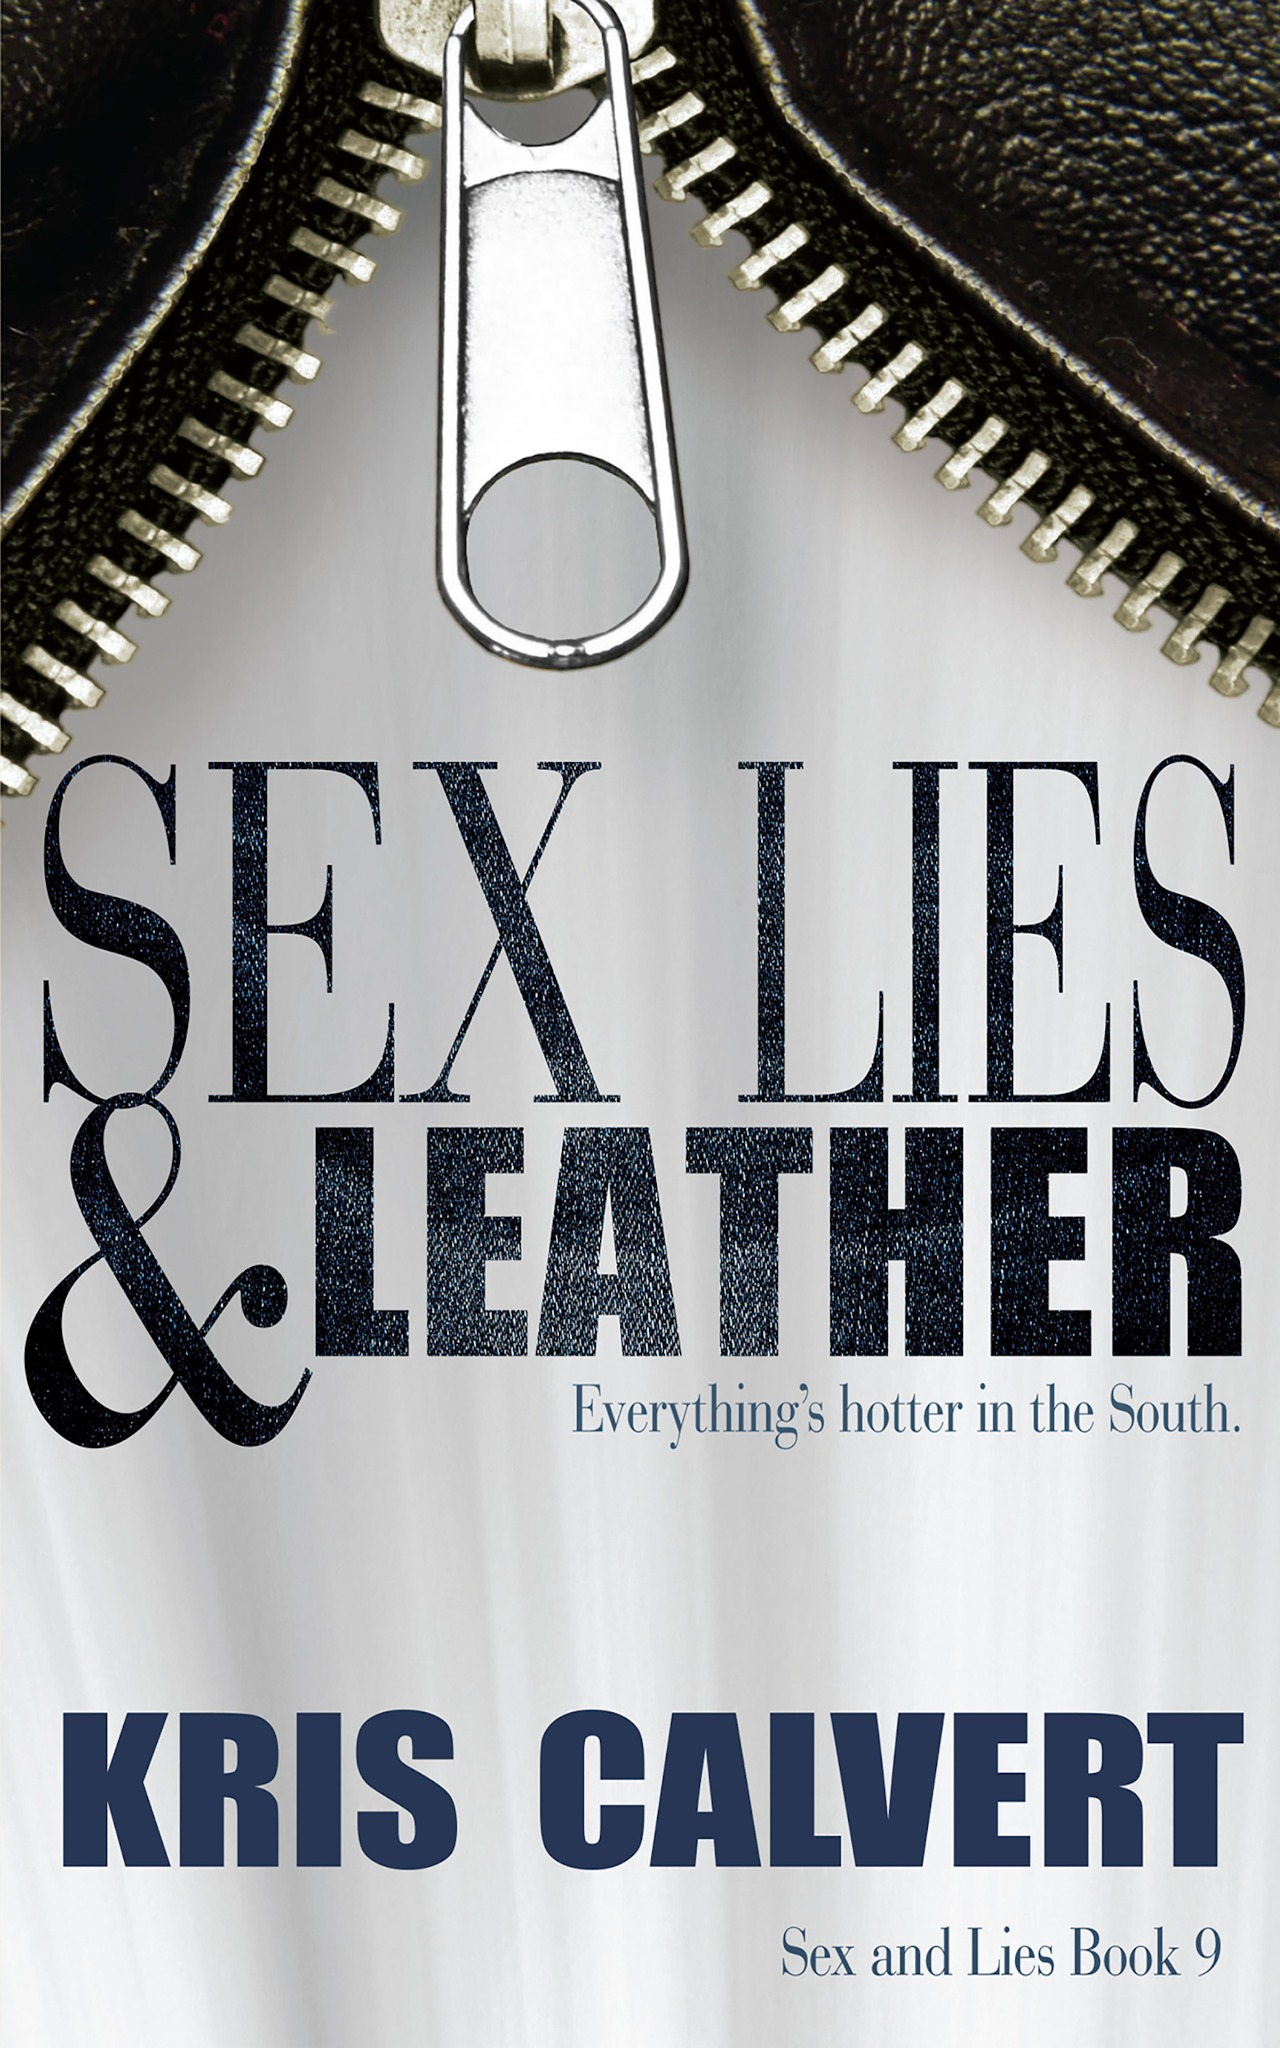 SEX, LIES & LEATHER